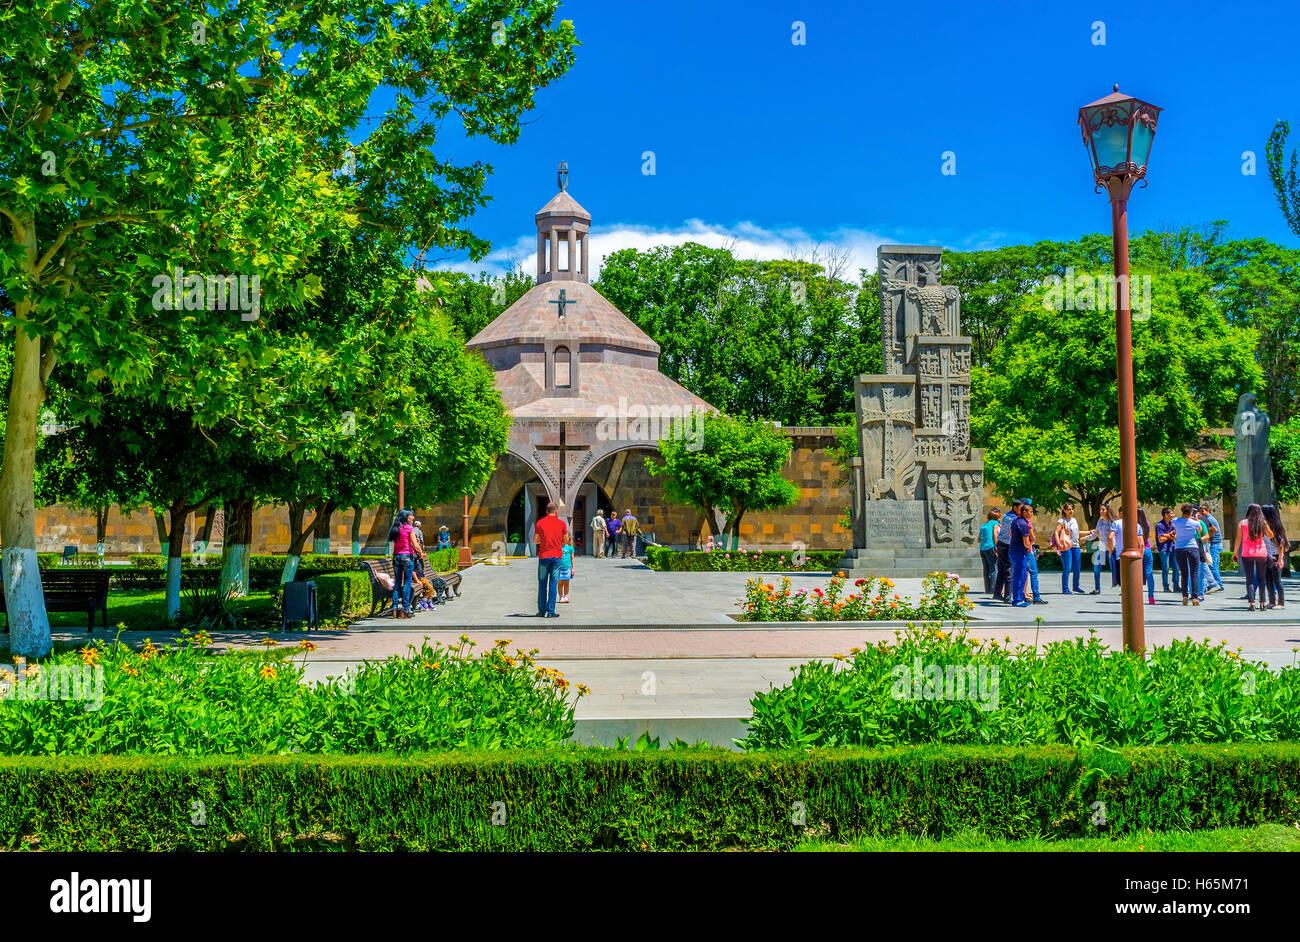 The St Vartan nad Hovhannes Baptistery and the Genocide Monument, surrounded by lush garden, Vagharshapat, Armenia - Stock Image